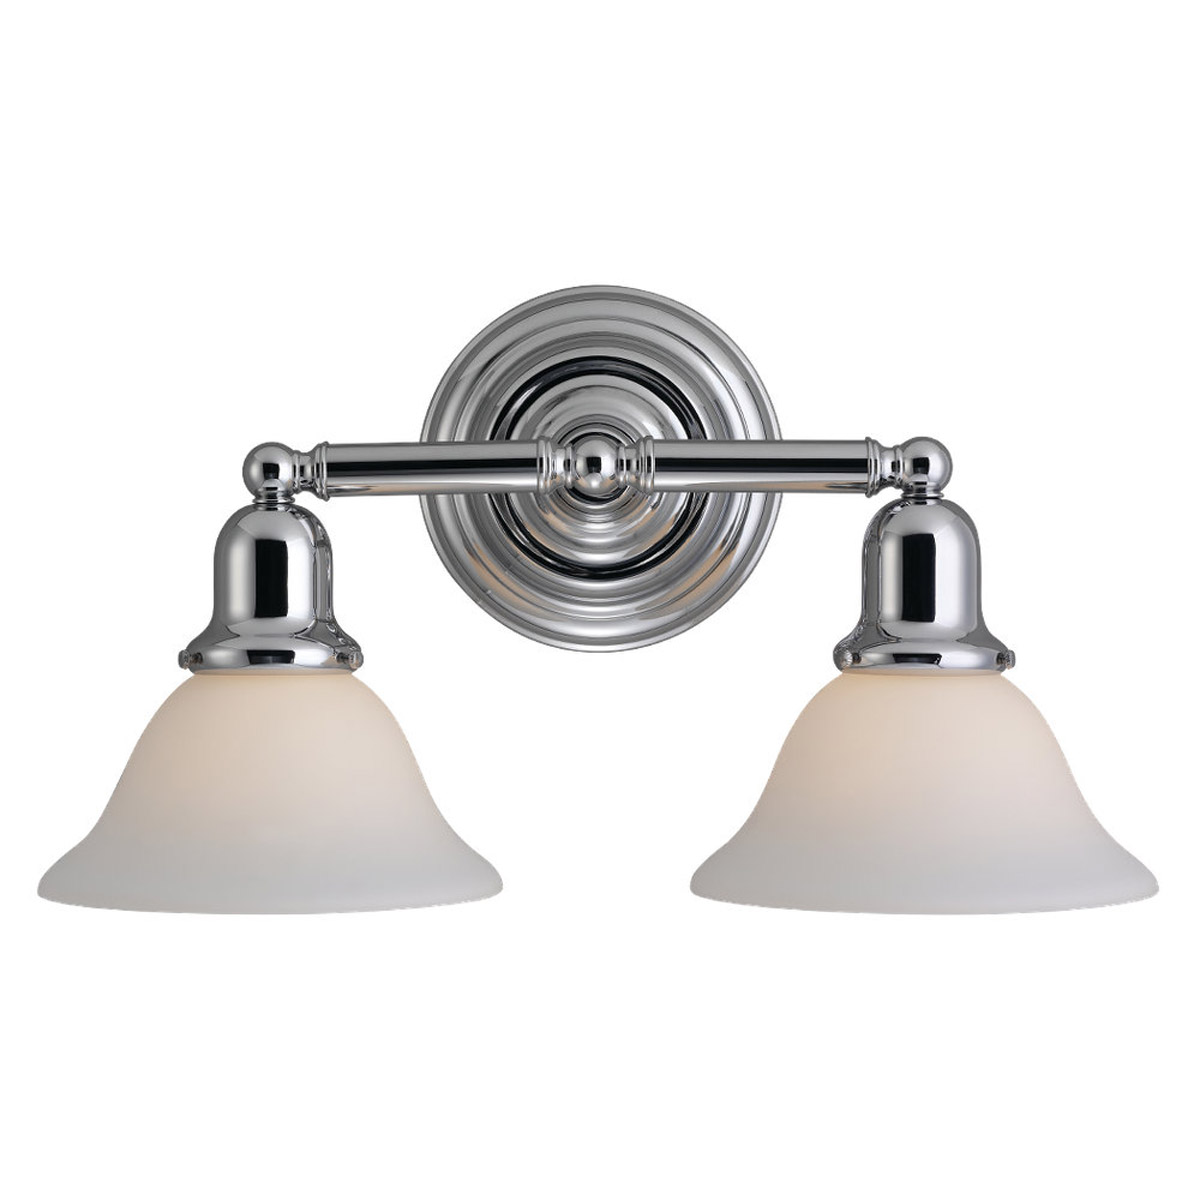 Sea Gull Lighting Sussex 2 Light Bath Vanity in Chrome 44061-05